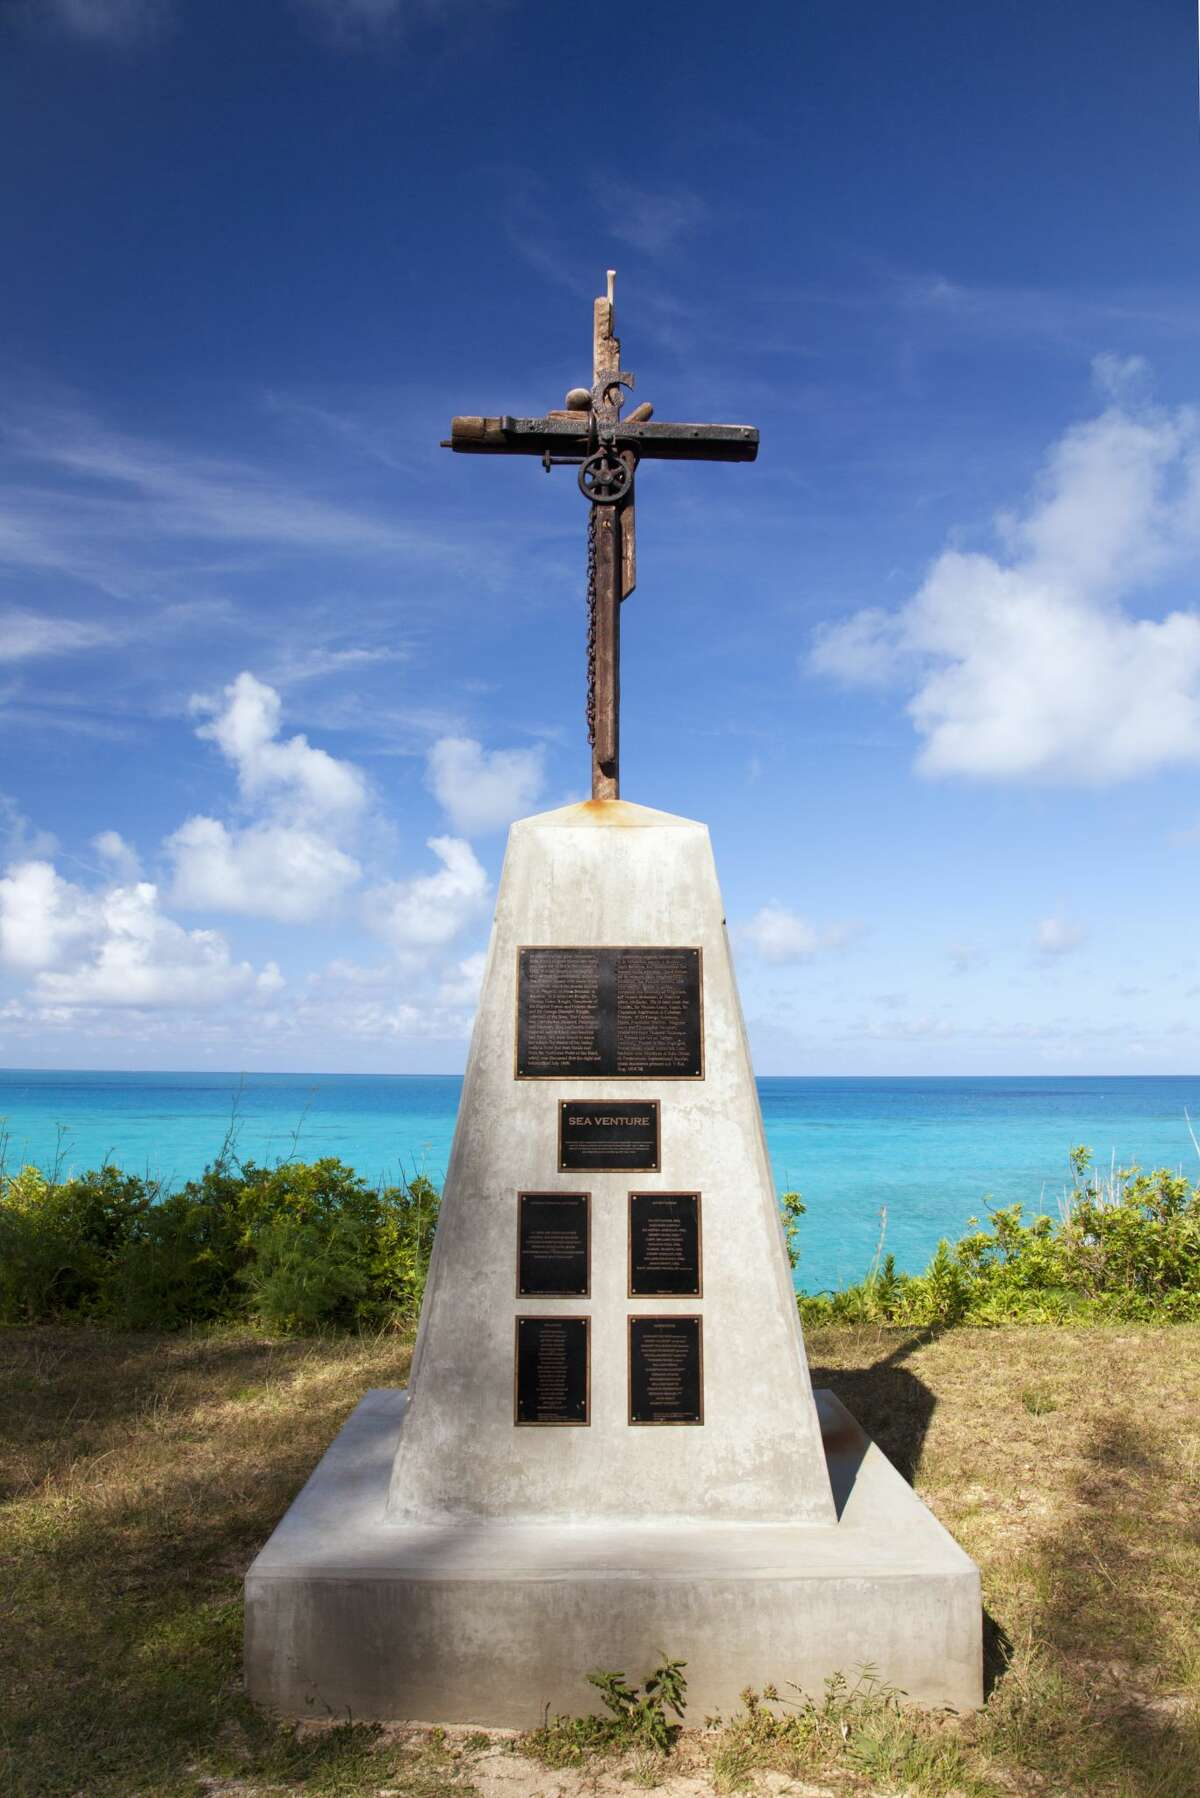 The Sea Venture When: 1609 Tale: The Sea Venture wrecked near the eastern end of Bermuda in a 1609 storm as it brought the first English settlers to the island. A memorial was erected in 2009 in St. George, Bermuda, to the survivors of the shipwreck.